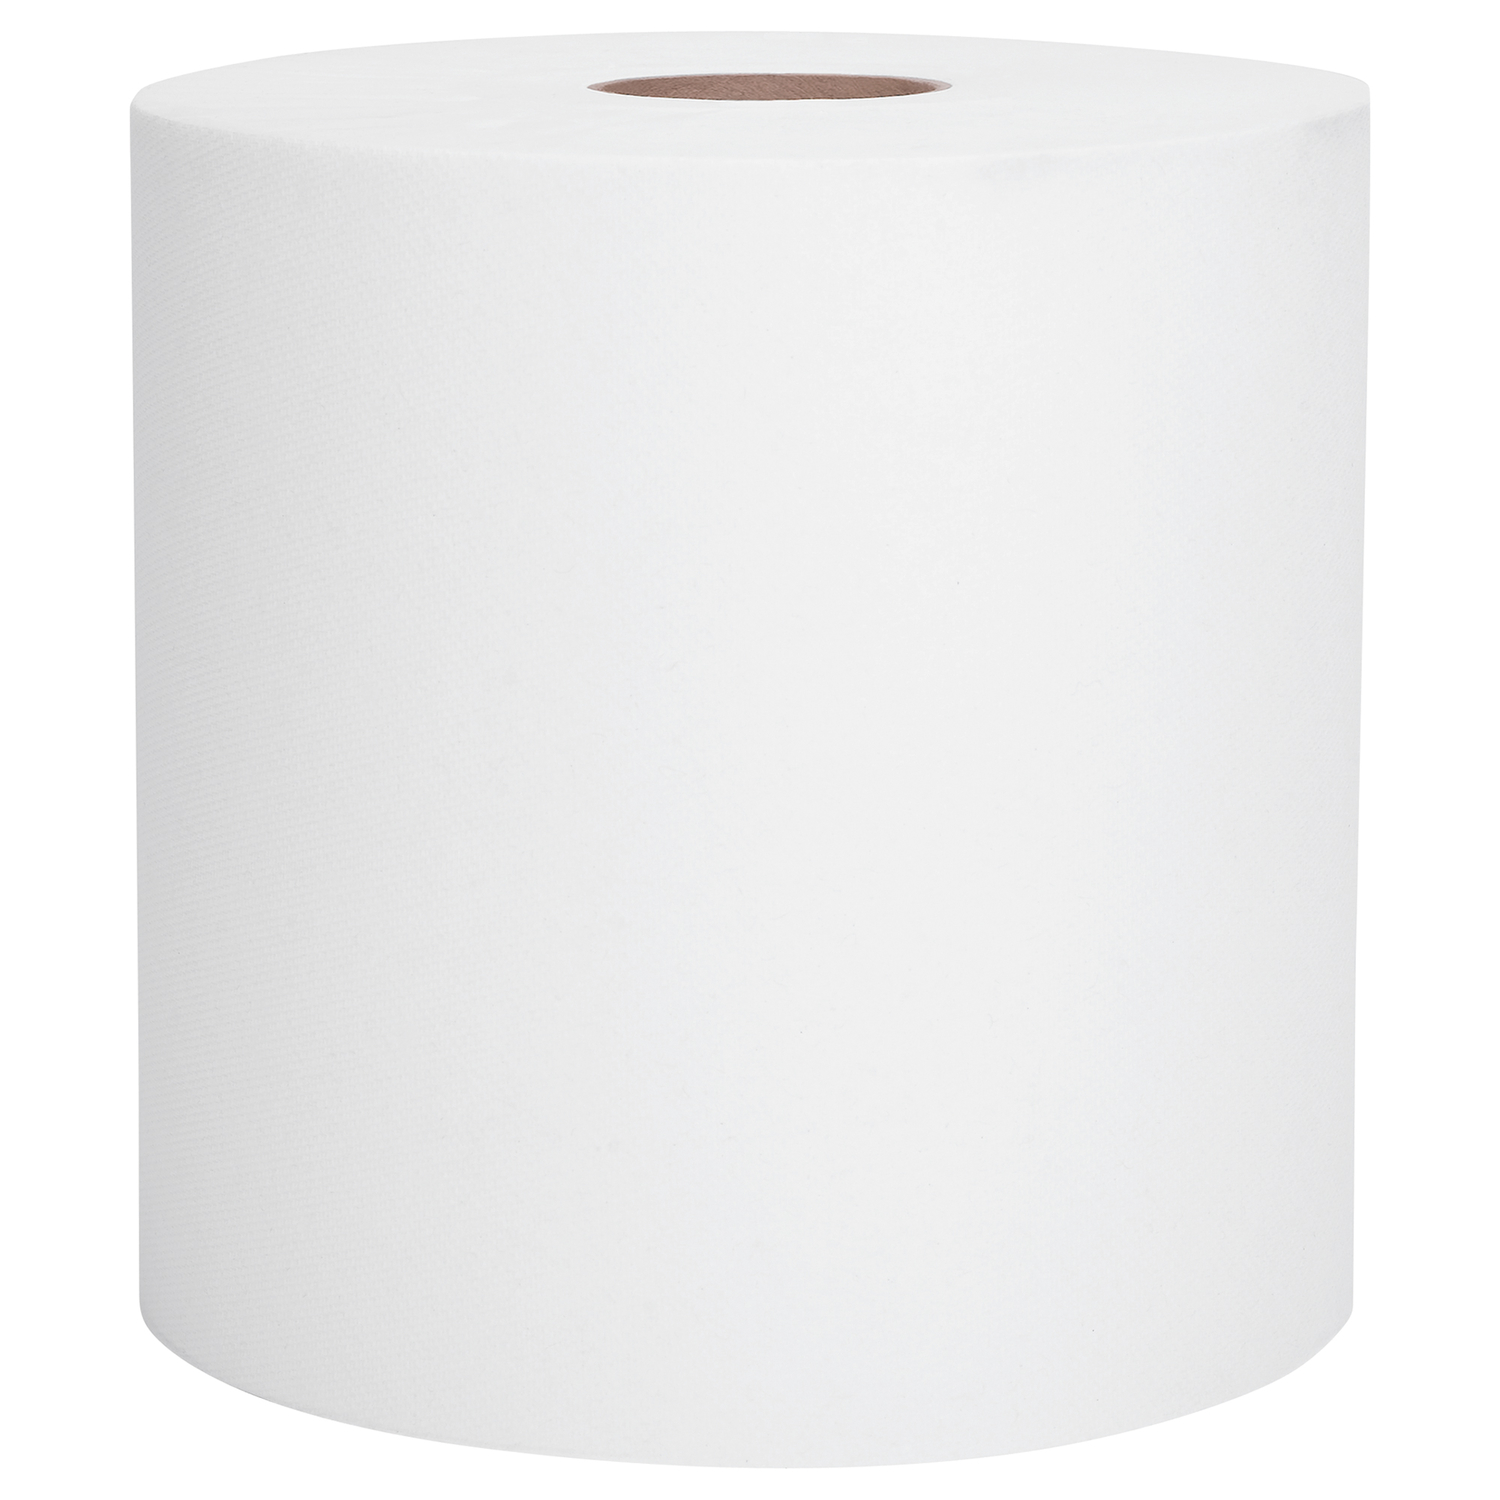 Scott  Paper Towels  1 Ply 12 roll